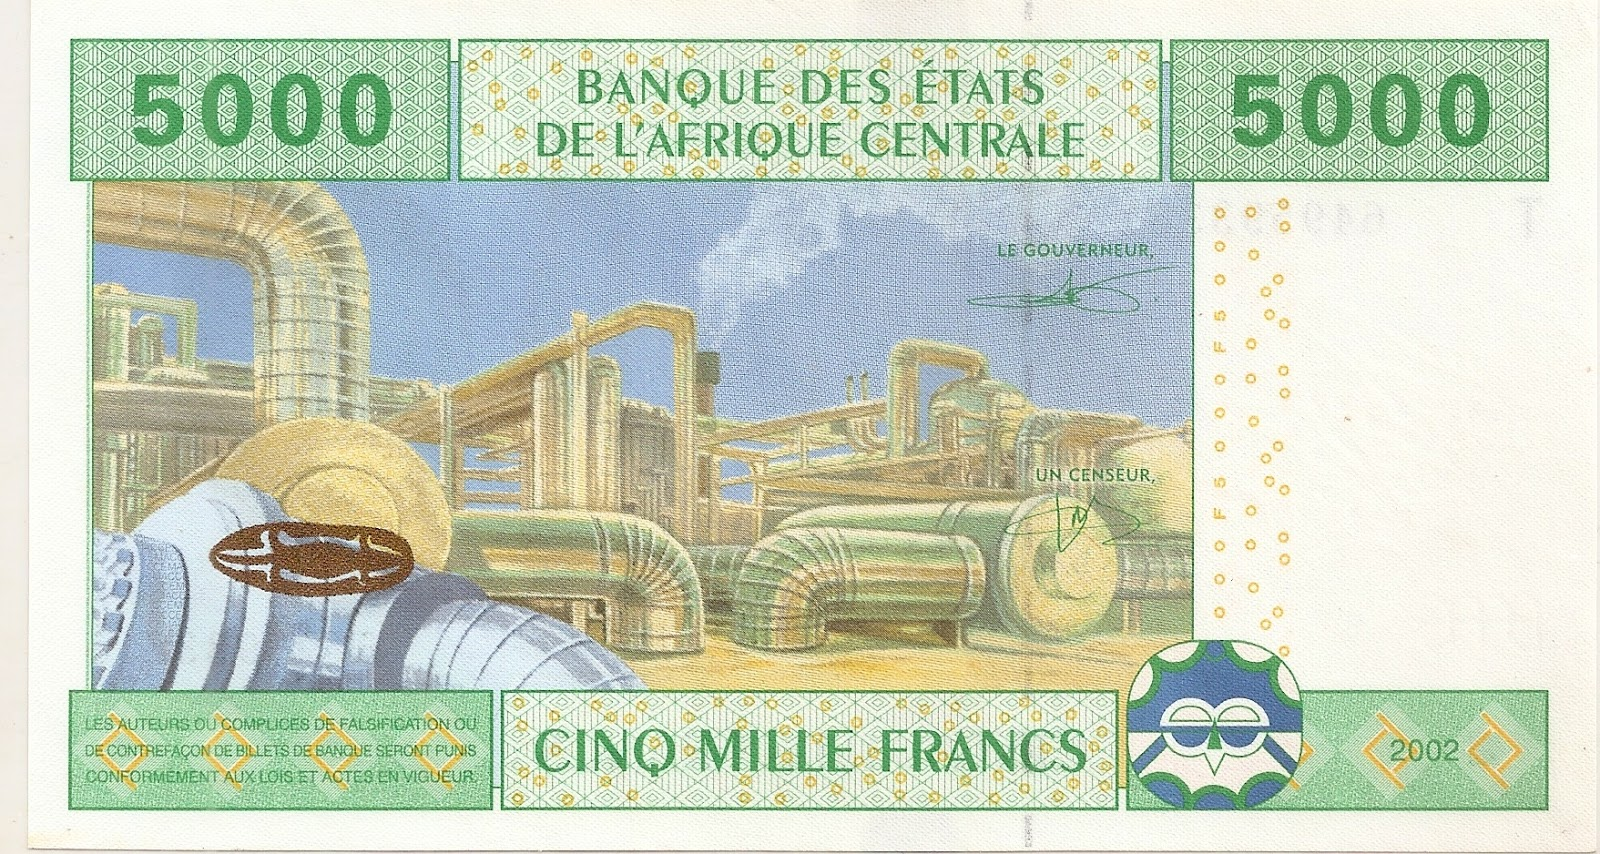 Coins and more 90 a central bank of west african states issues the back of a 5000 francs or cinq mille francs banknote the image shows an oil pumping station biocorpaavc